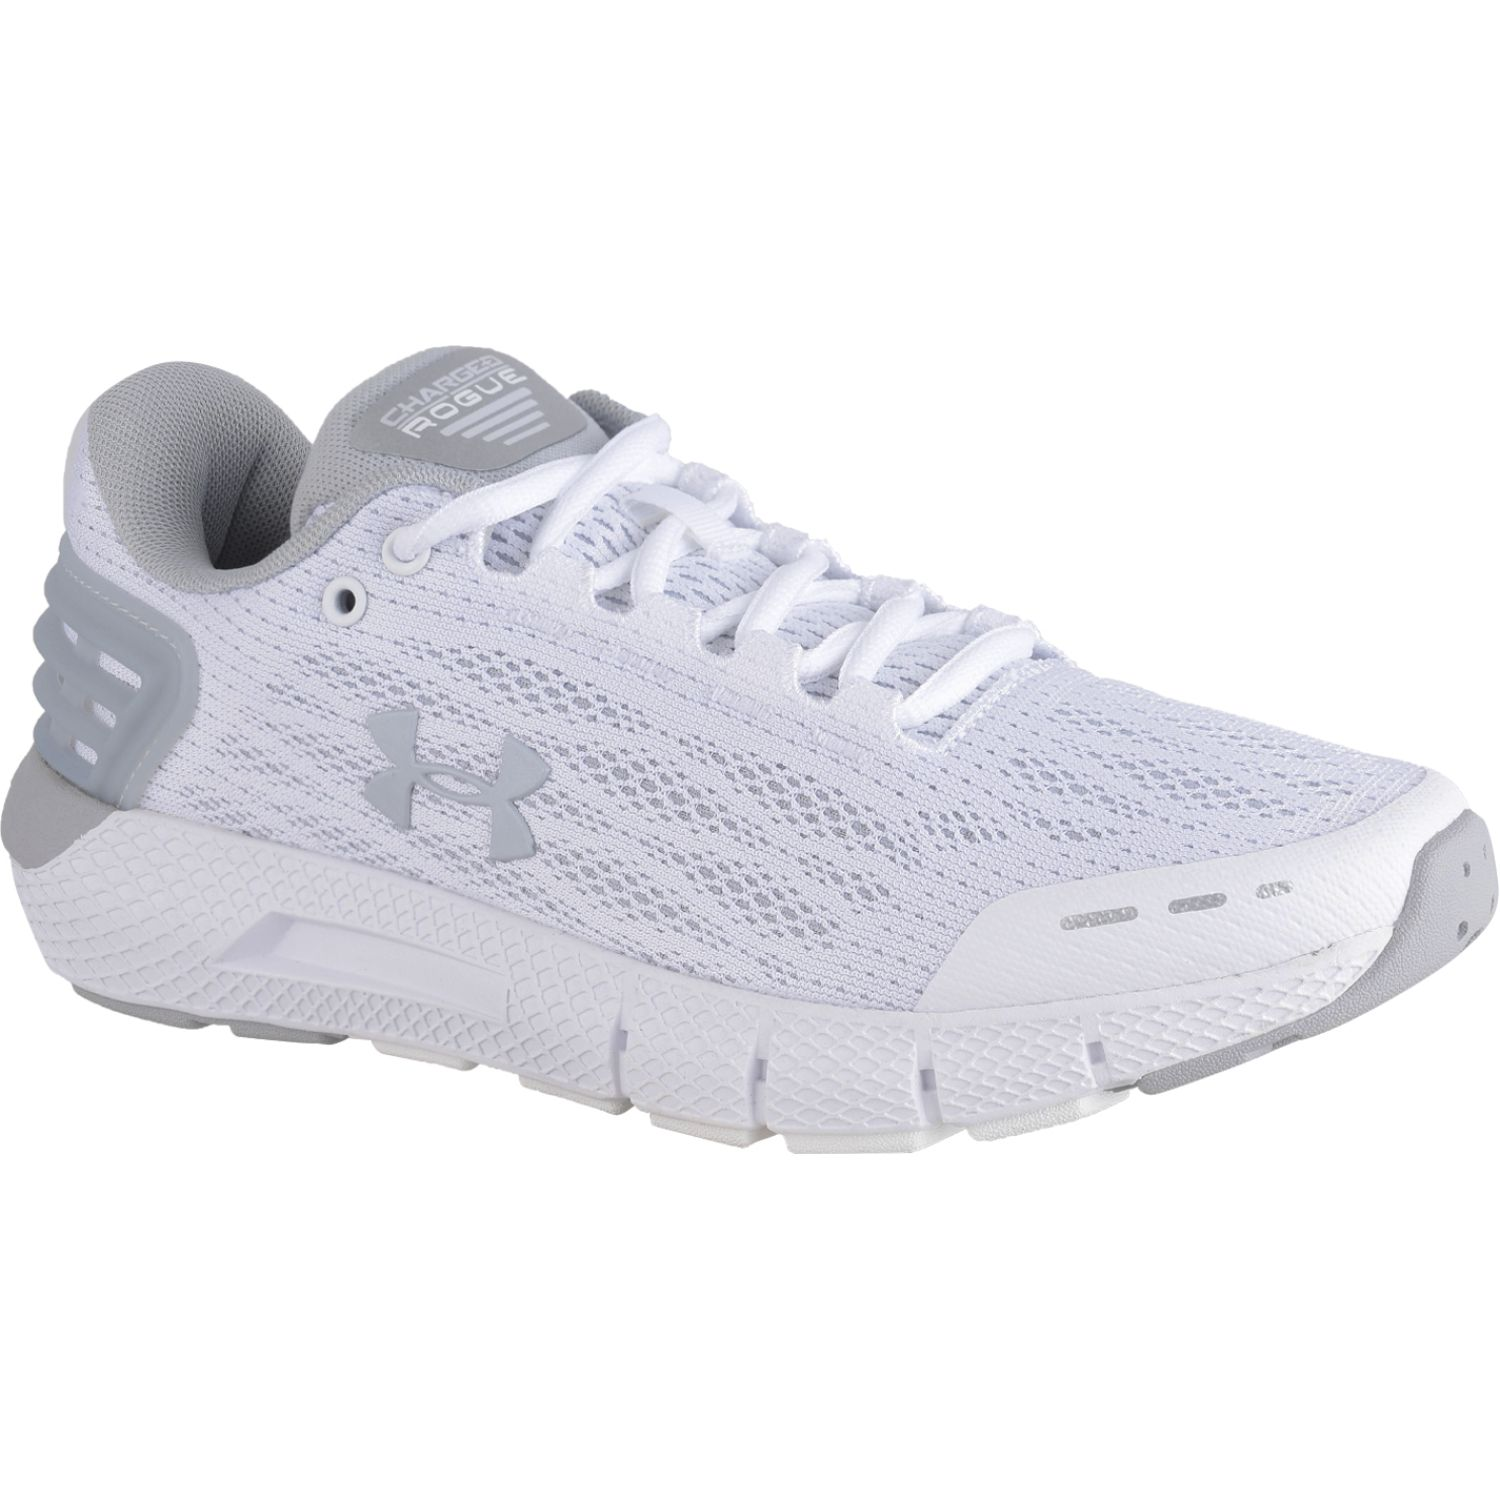 Under Armour ua w charged rogue Blanco Running en pista